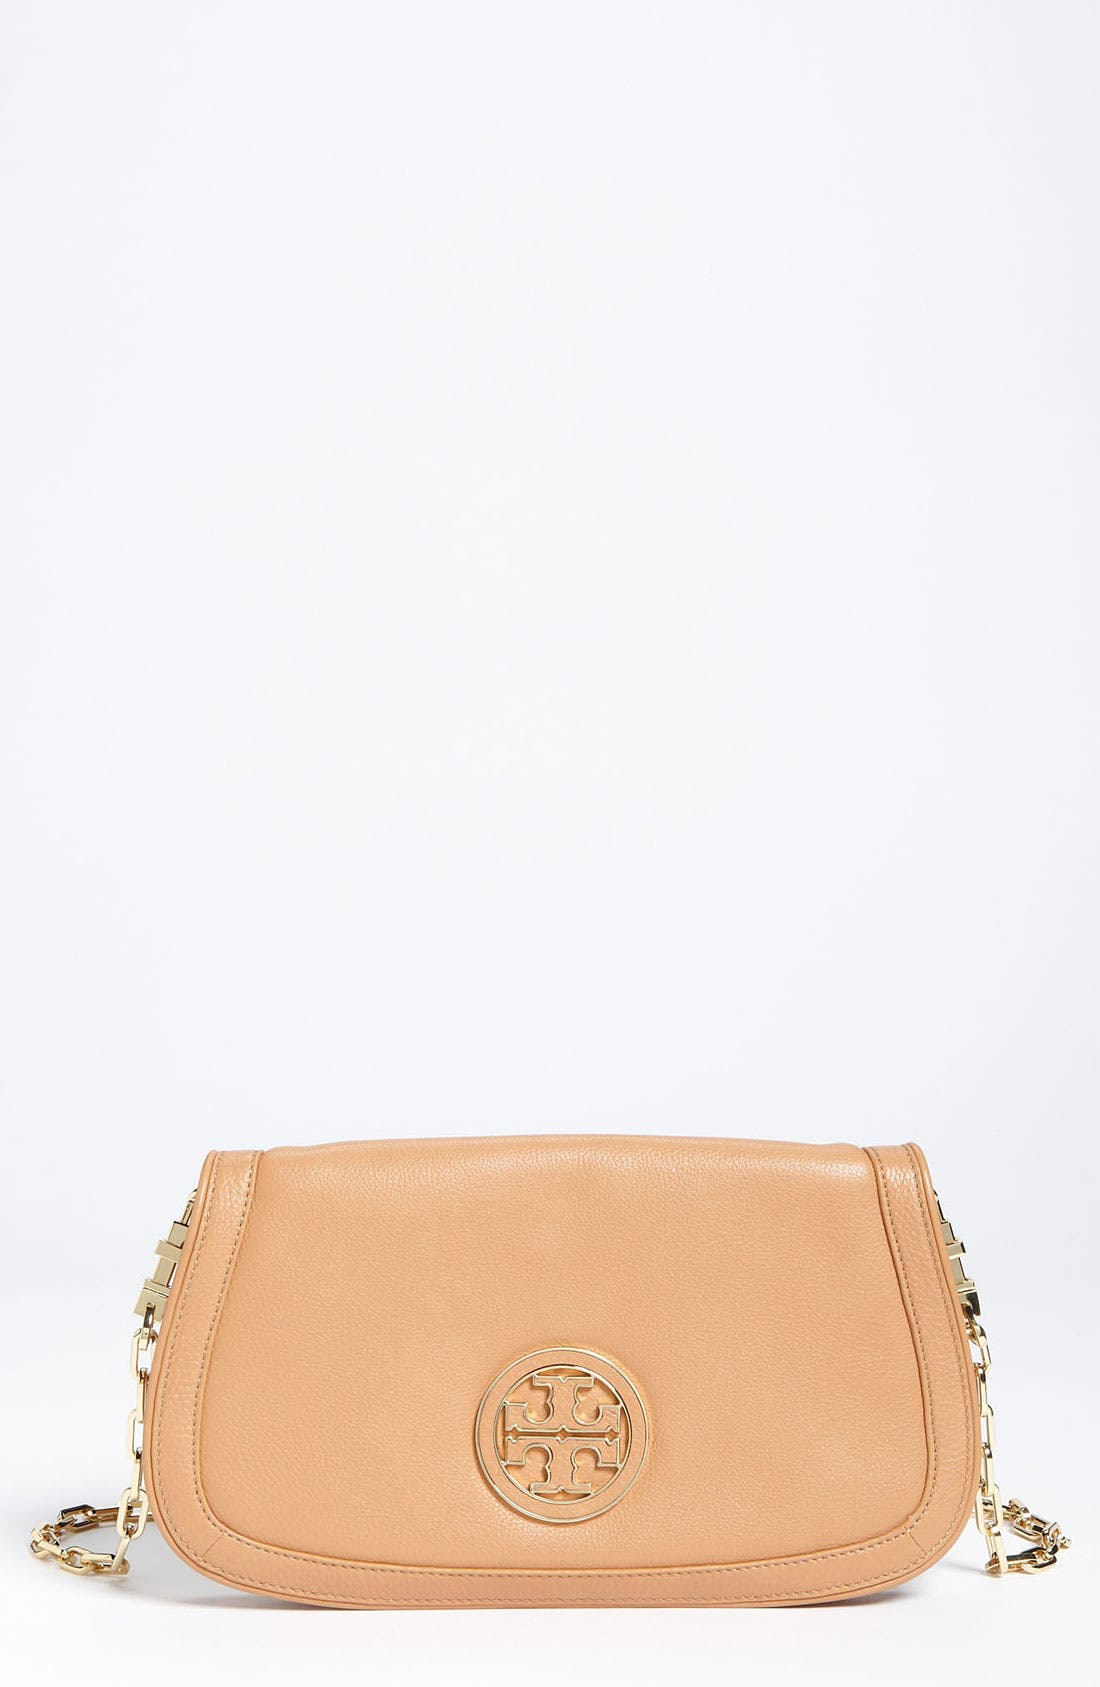 Alternate Image 1 Selected - Tory Burch 'Amanda - Angelux Logo' Clutch